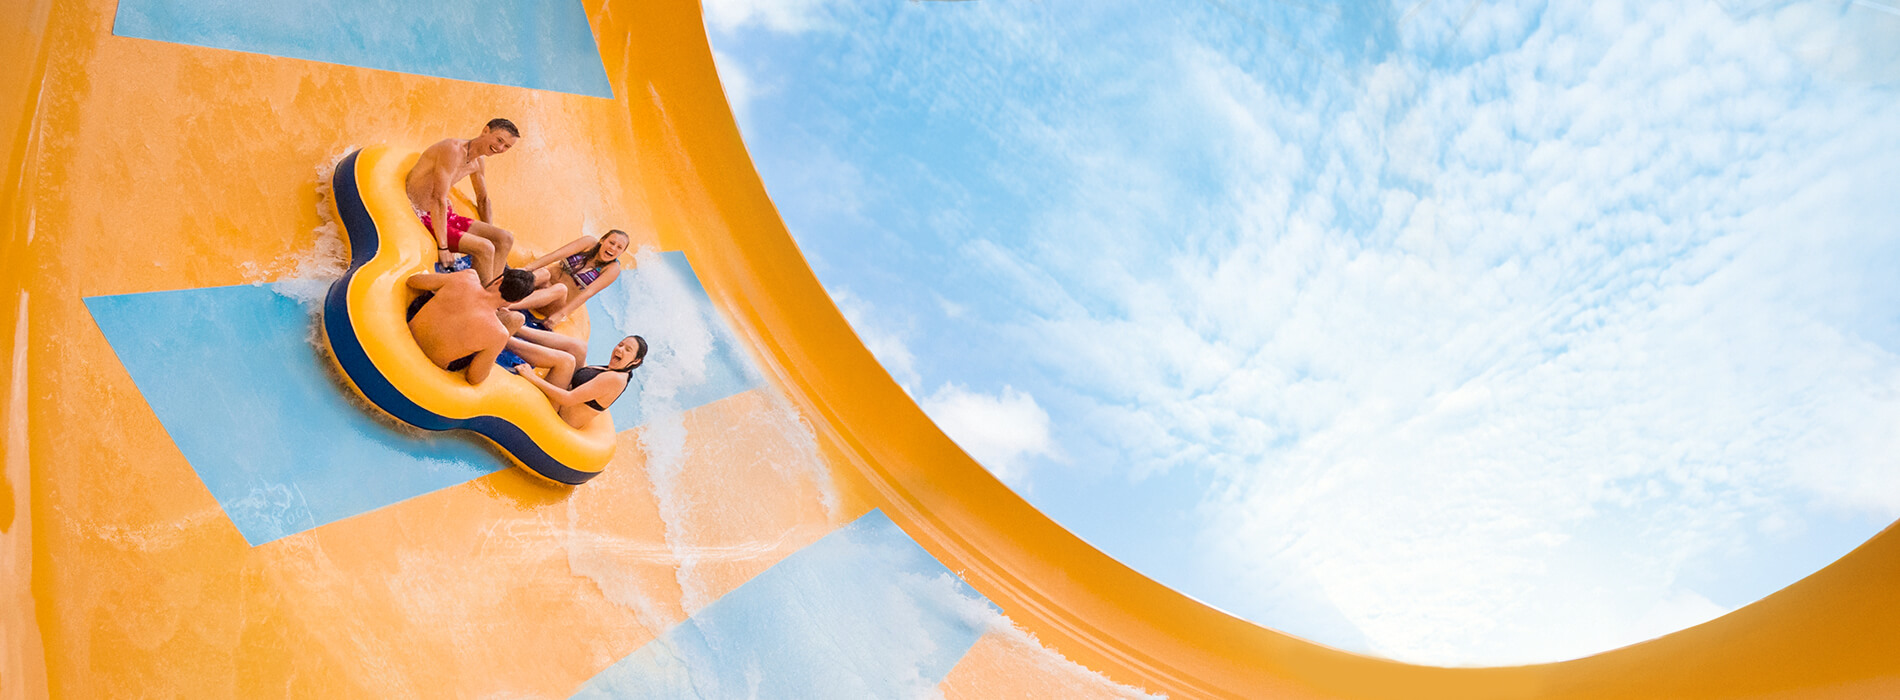 Colossal Curl Water Slide at Adventure Island Tampa Bay